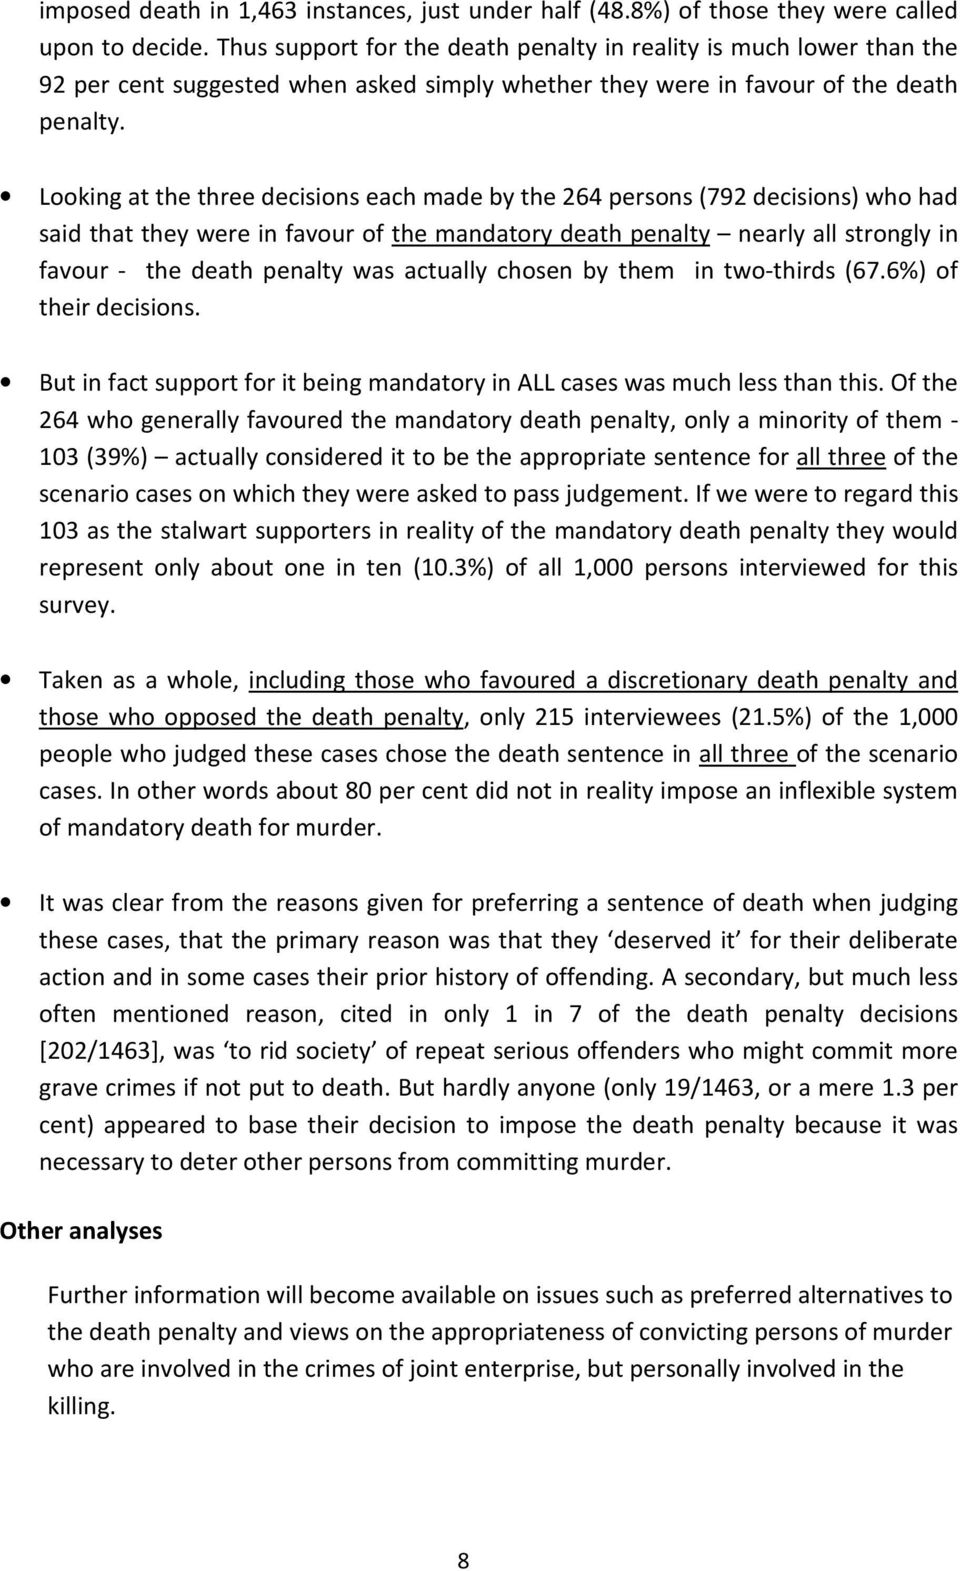 Looking at the three decisions each made by the 264 persons (792 decisions) who had said that they were in favour of the mandatory death penalty nearly all strongly in favour - the death penalty was